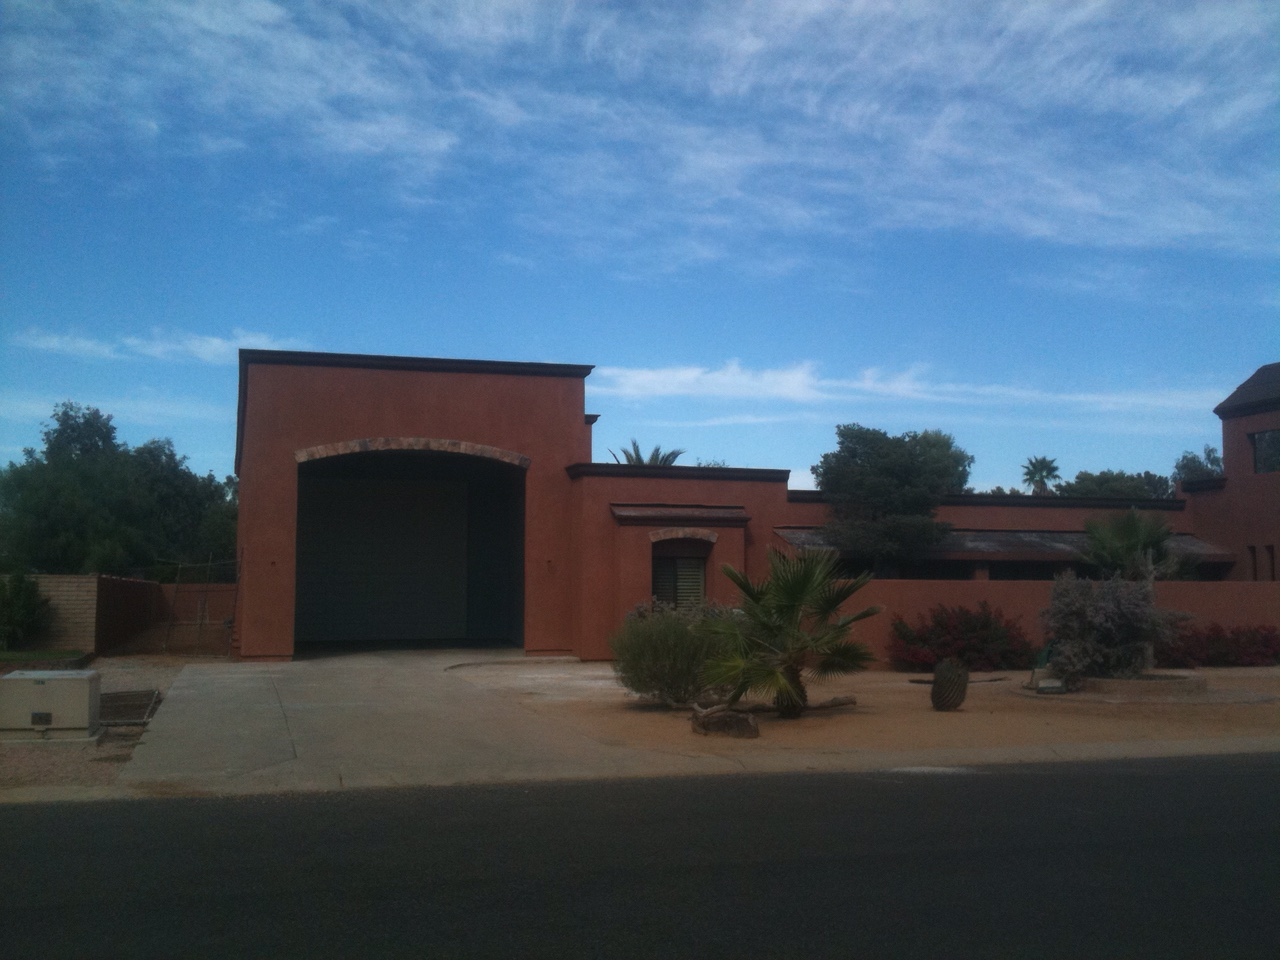 BUILDING A GARAGE OR CARPORT in Phoenix AZ? Additions